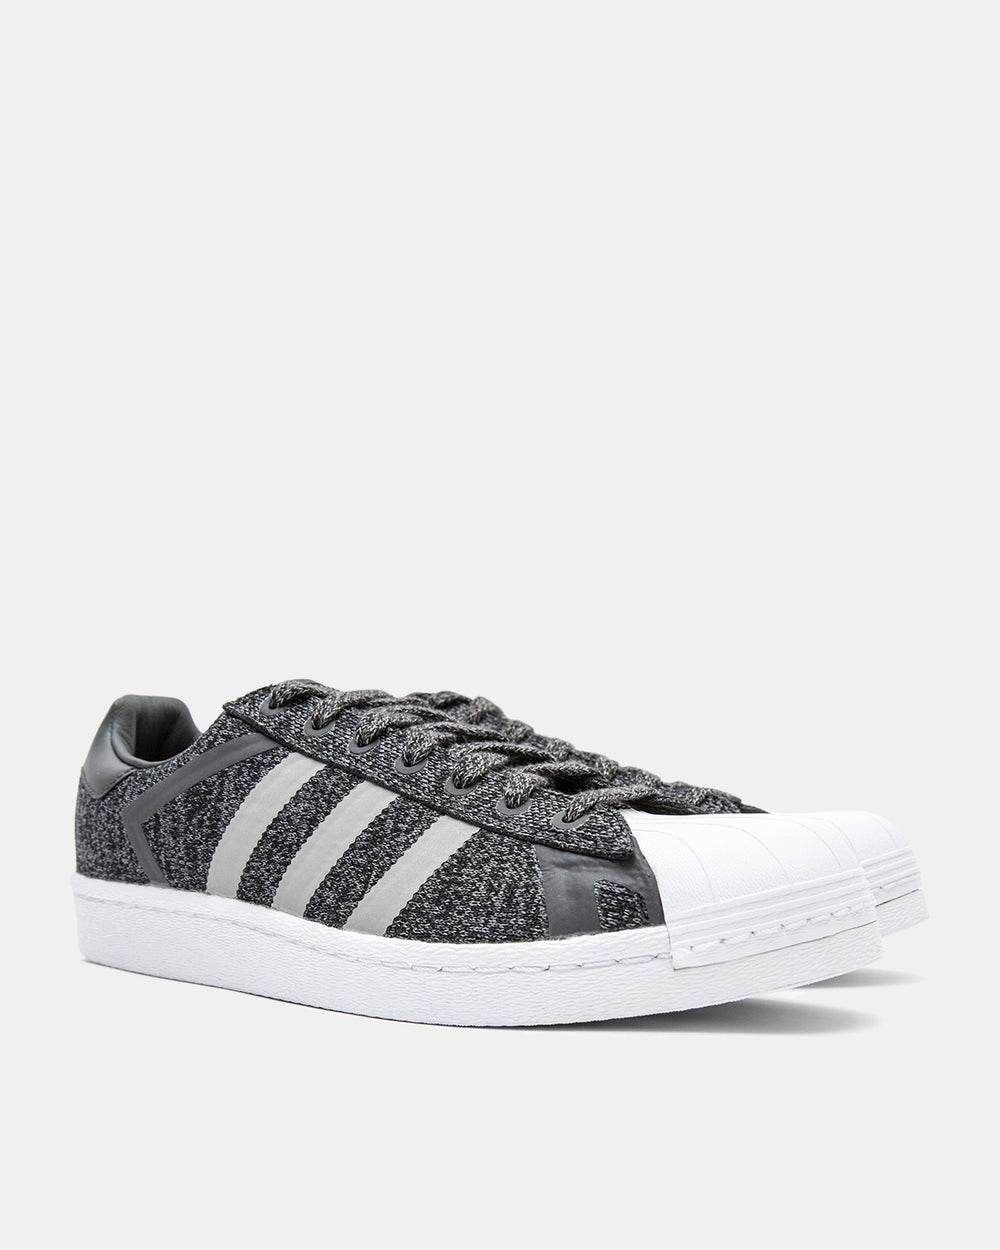 adidas - Superstar White Mountaineering (Core Black | Solid Grey | Footwear White)